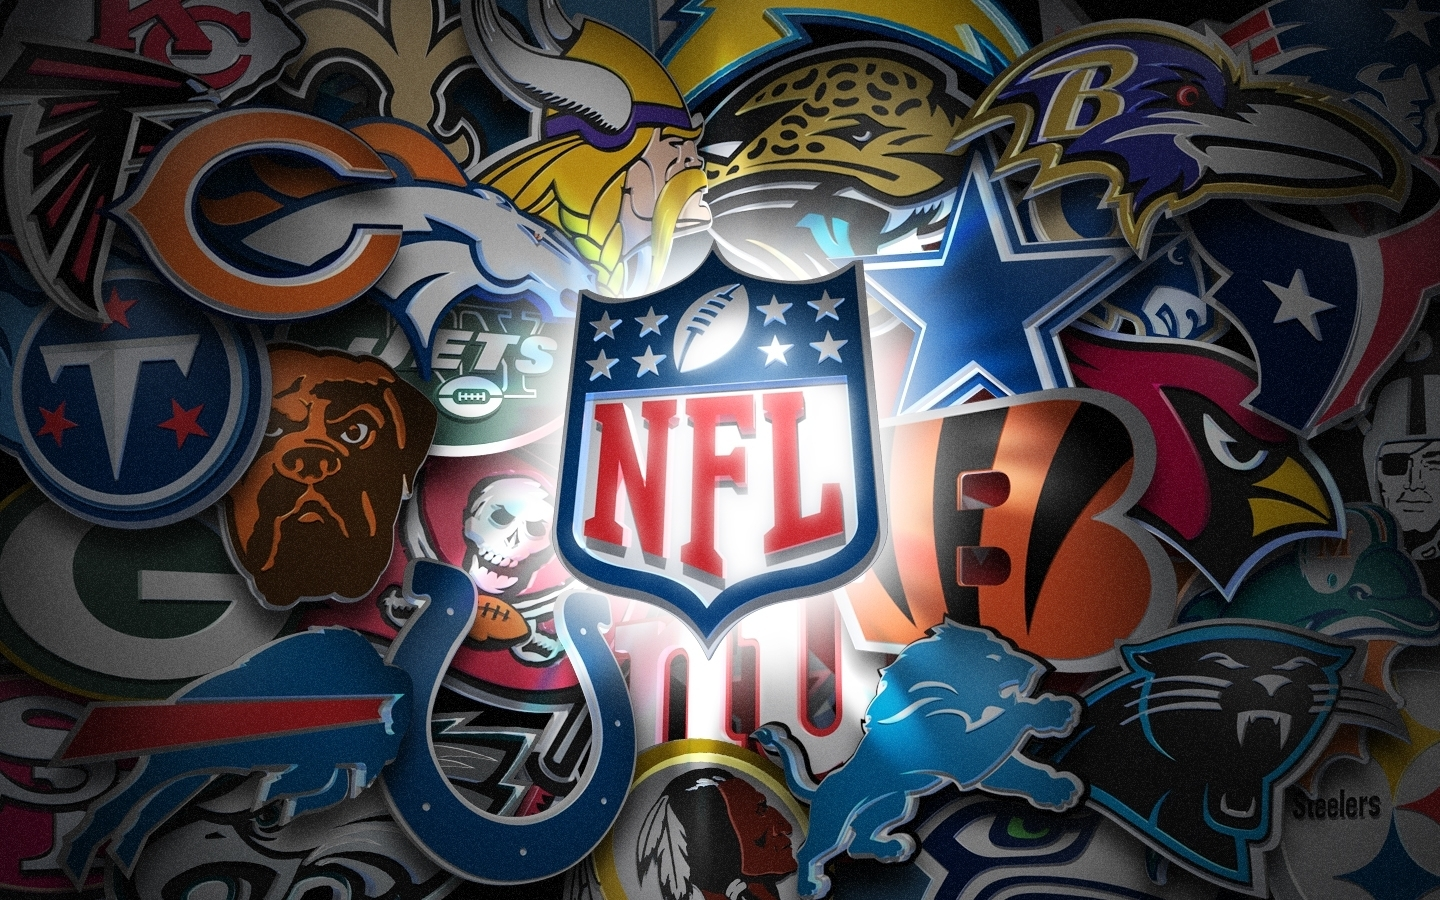 nfl teams logo wallpaper 1440×900 - high definition wallpaper